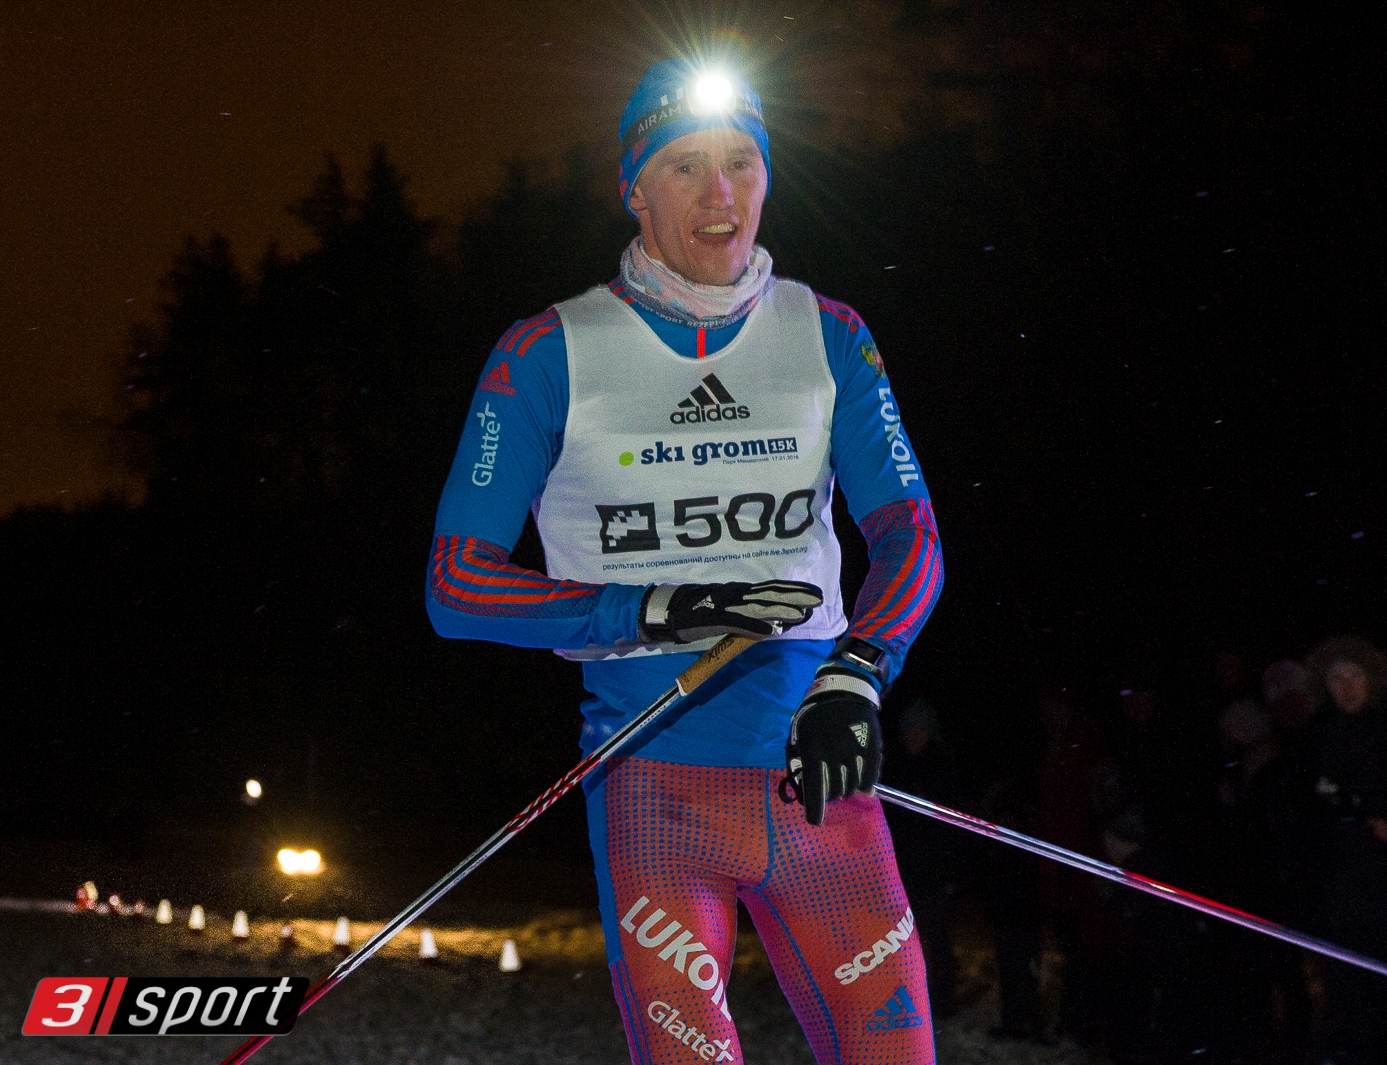 SkiGrom Night 15k